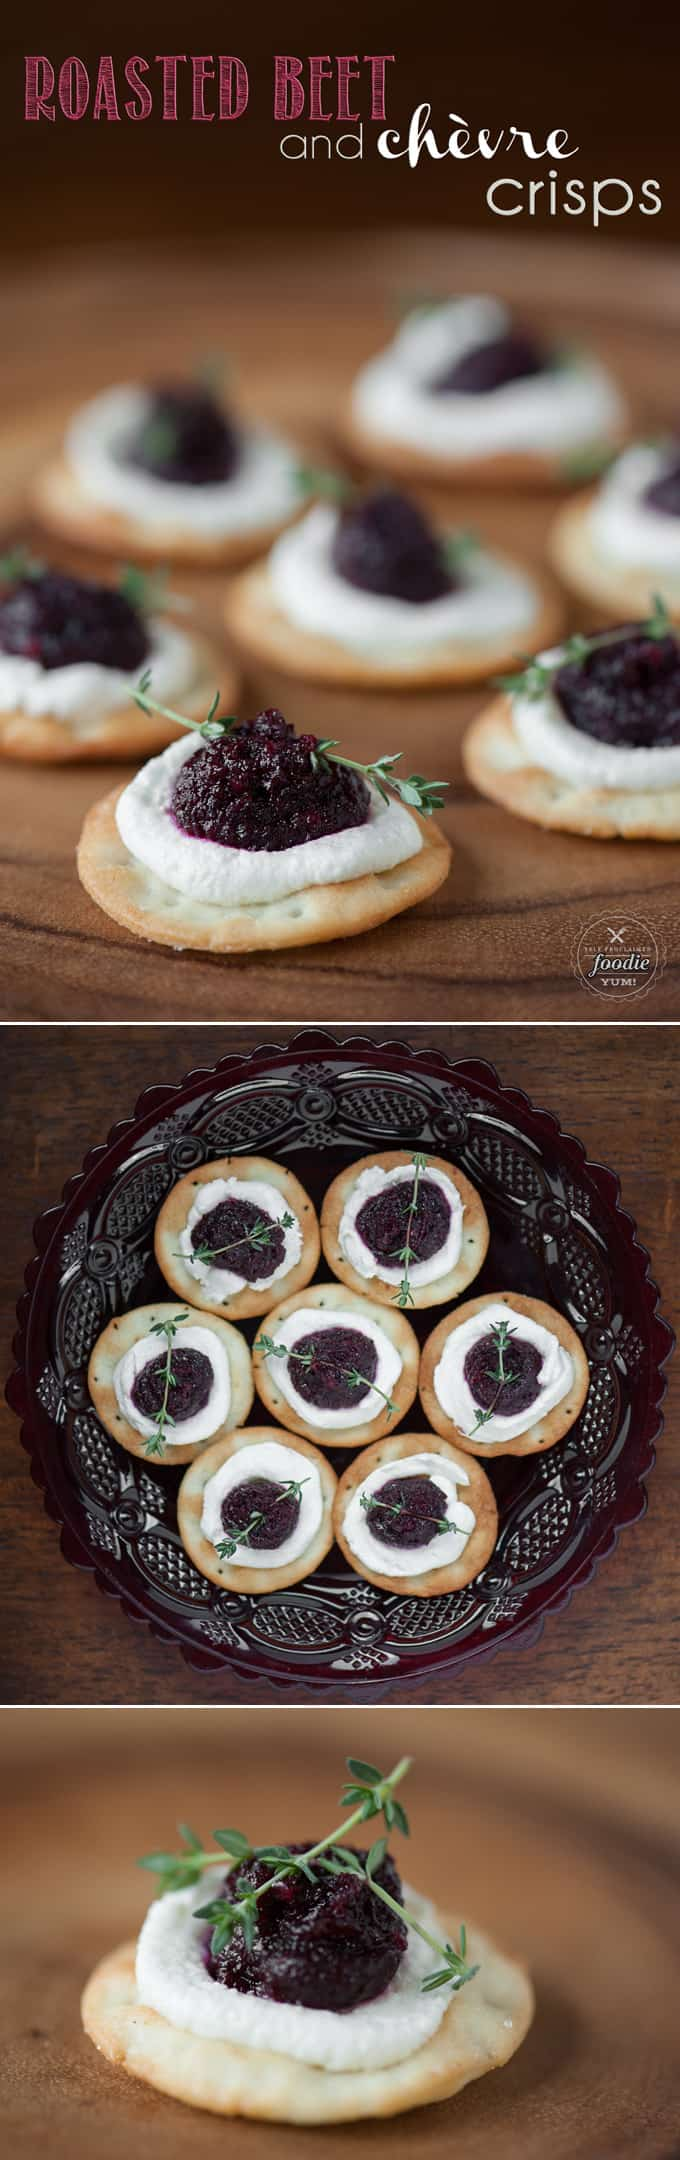 Roasted Beet and Chèvre Crisps are delicious bite sized appetizers made of roasted garlic and beets over creamy goat cheese. Perfect for Fall entertaining.